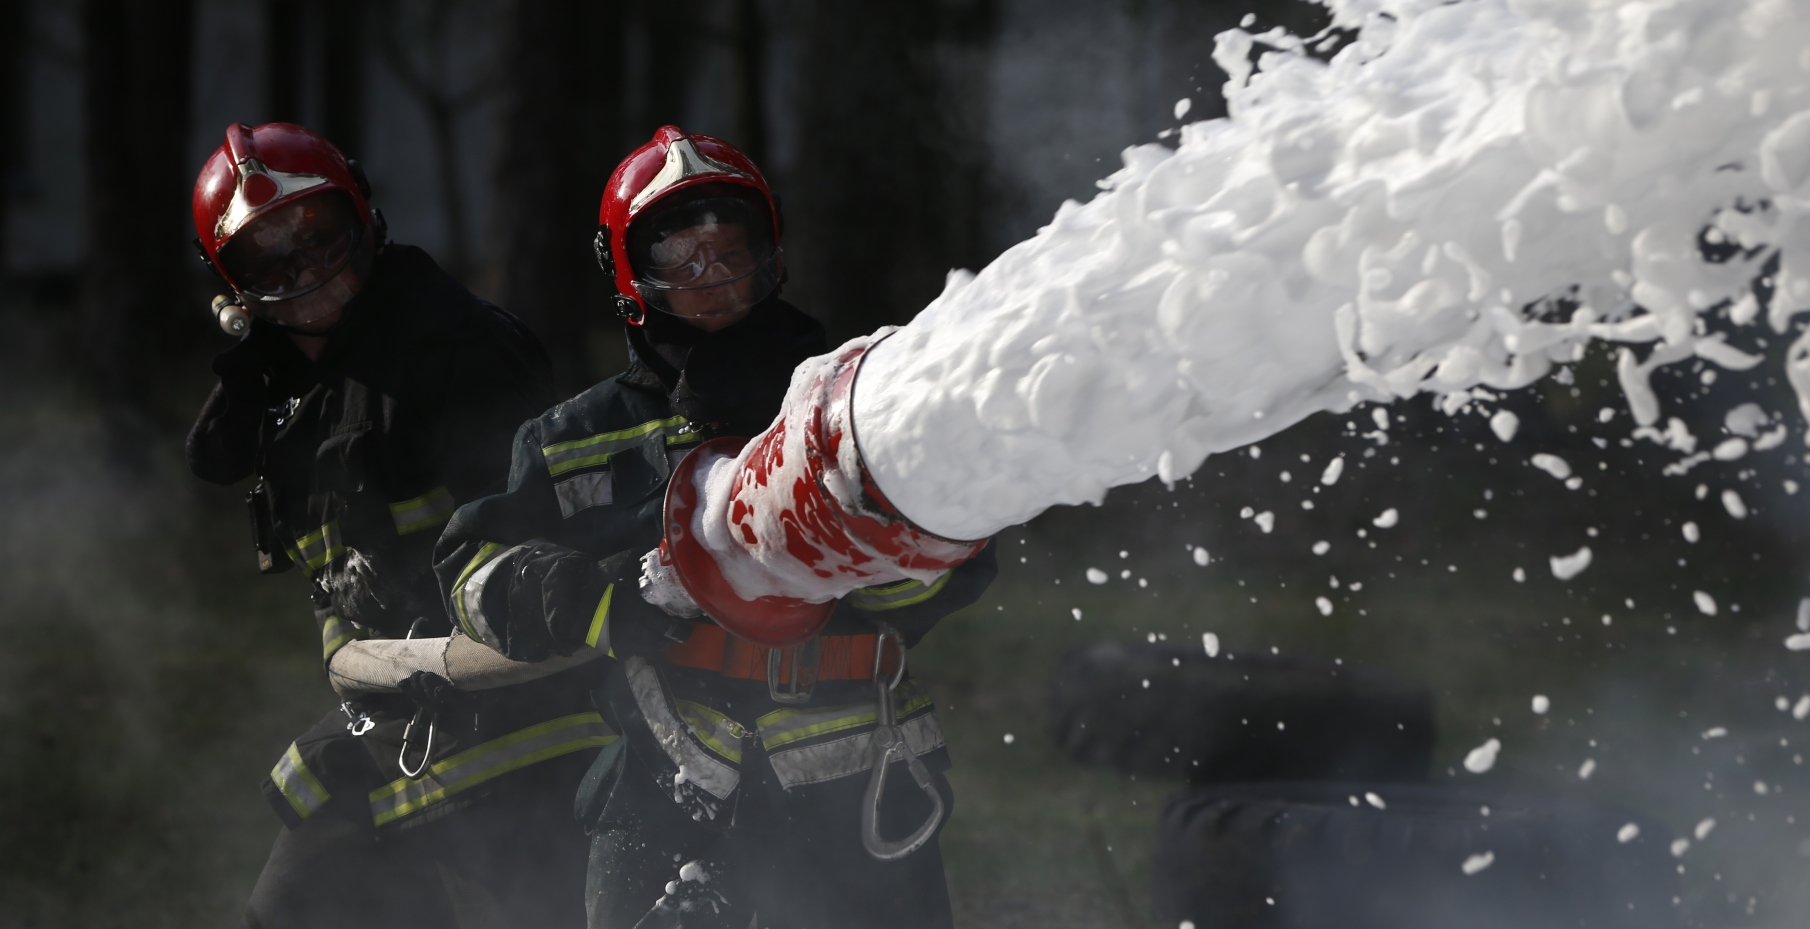 The first of the fire fighting foam lawsuits to be heard in court, one of many included in the Multi-District Litigation, resulted in a settlement agreement that totaled $17.5 million. The settlement resolves the claims of nearly 300 Wisconsin residents whose drinking water was contaminated and health put at risk due to the fire fighting foam.